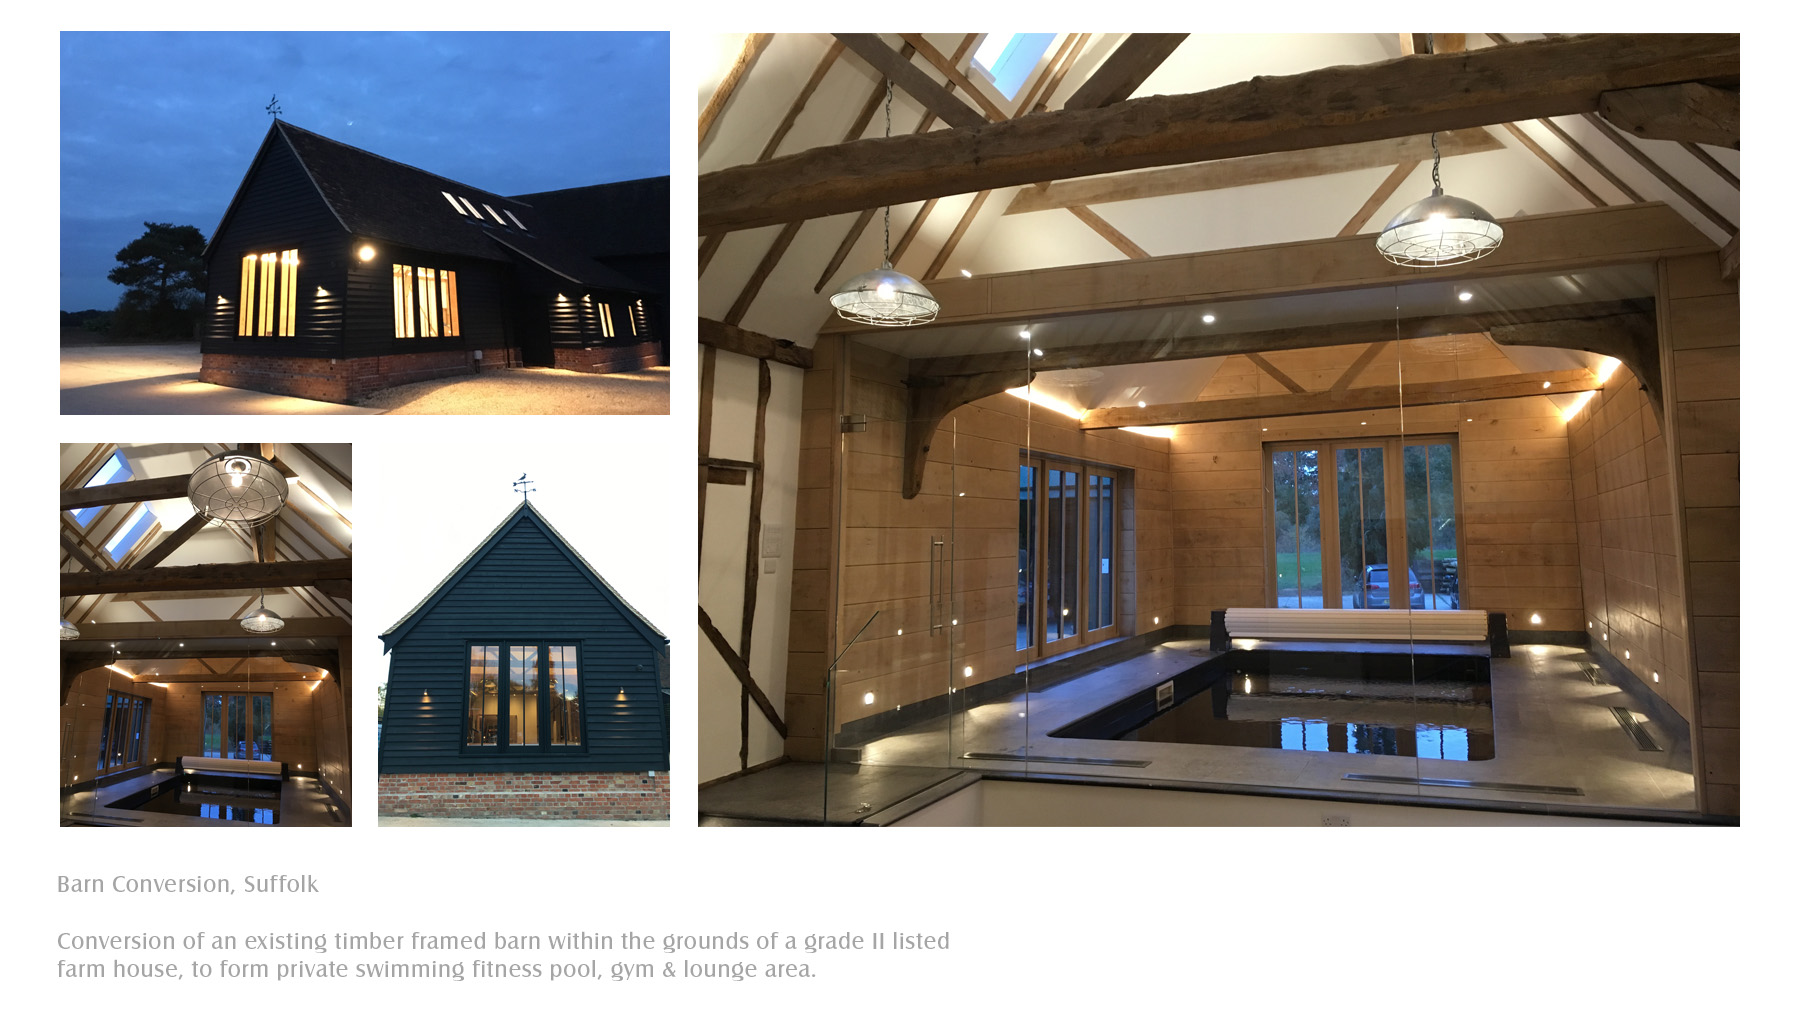 Barn conversion, Suffolk